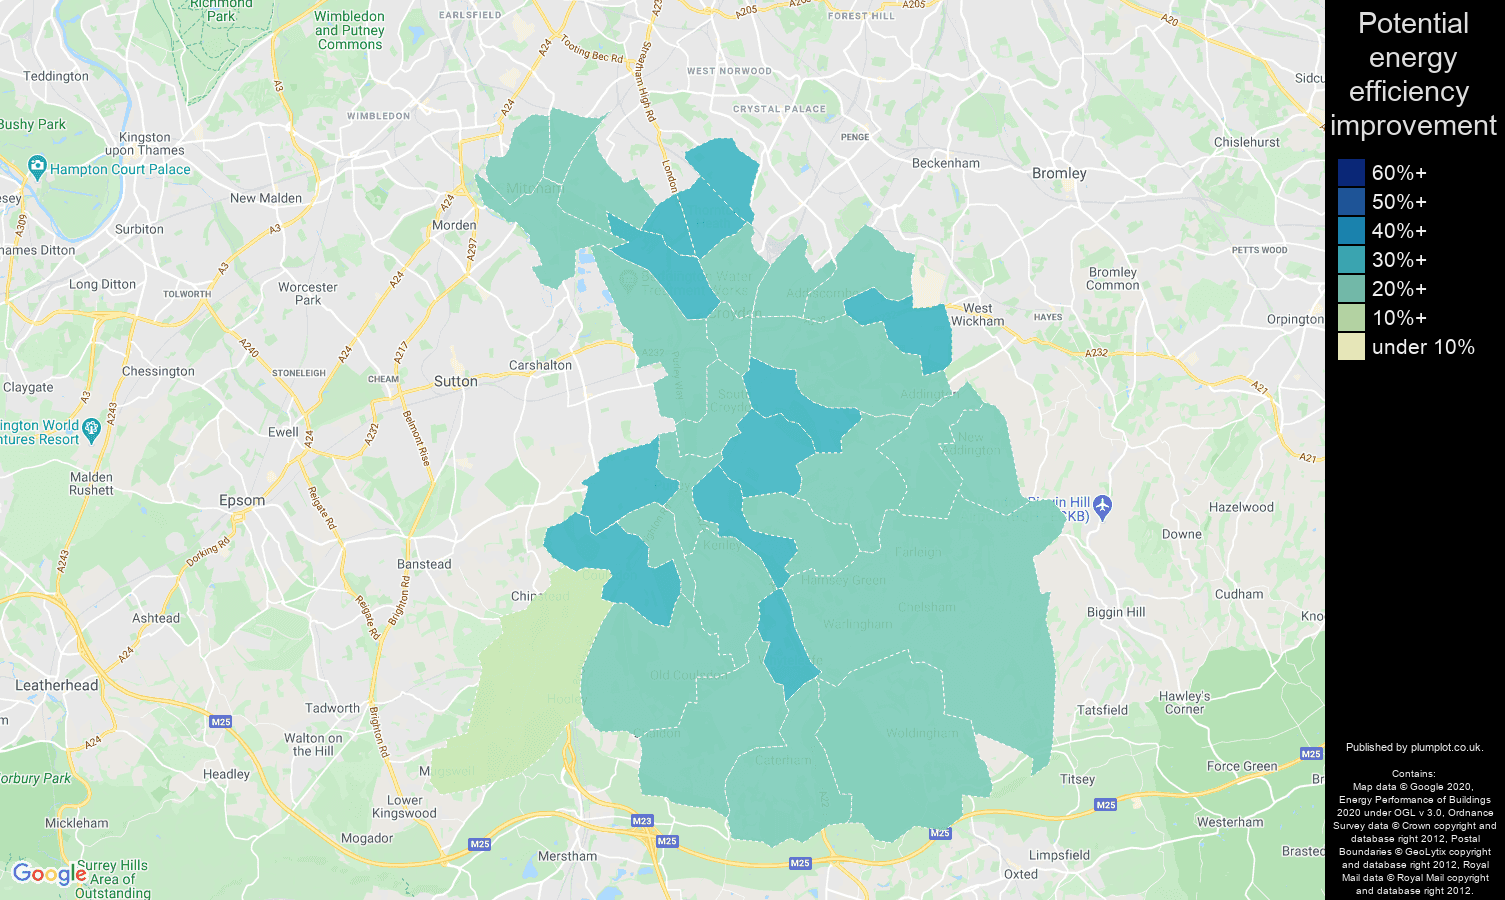 Croydon map of potential energy efficiency improvement of houses